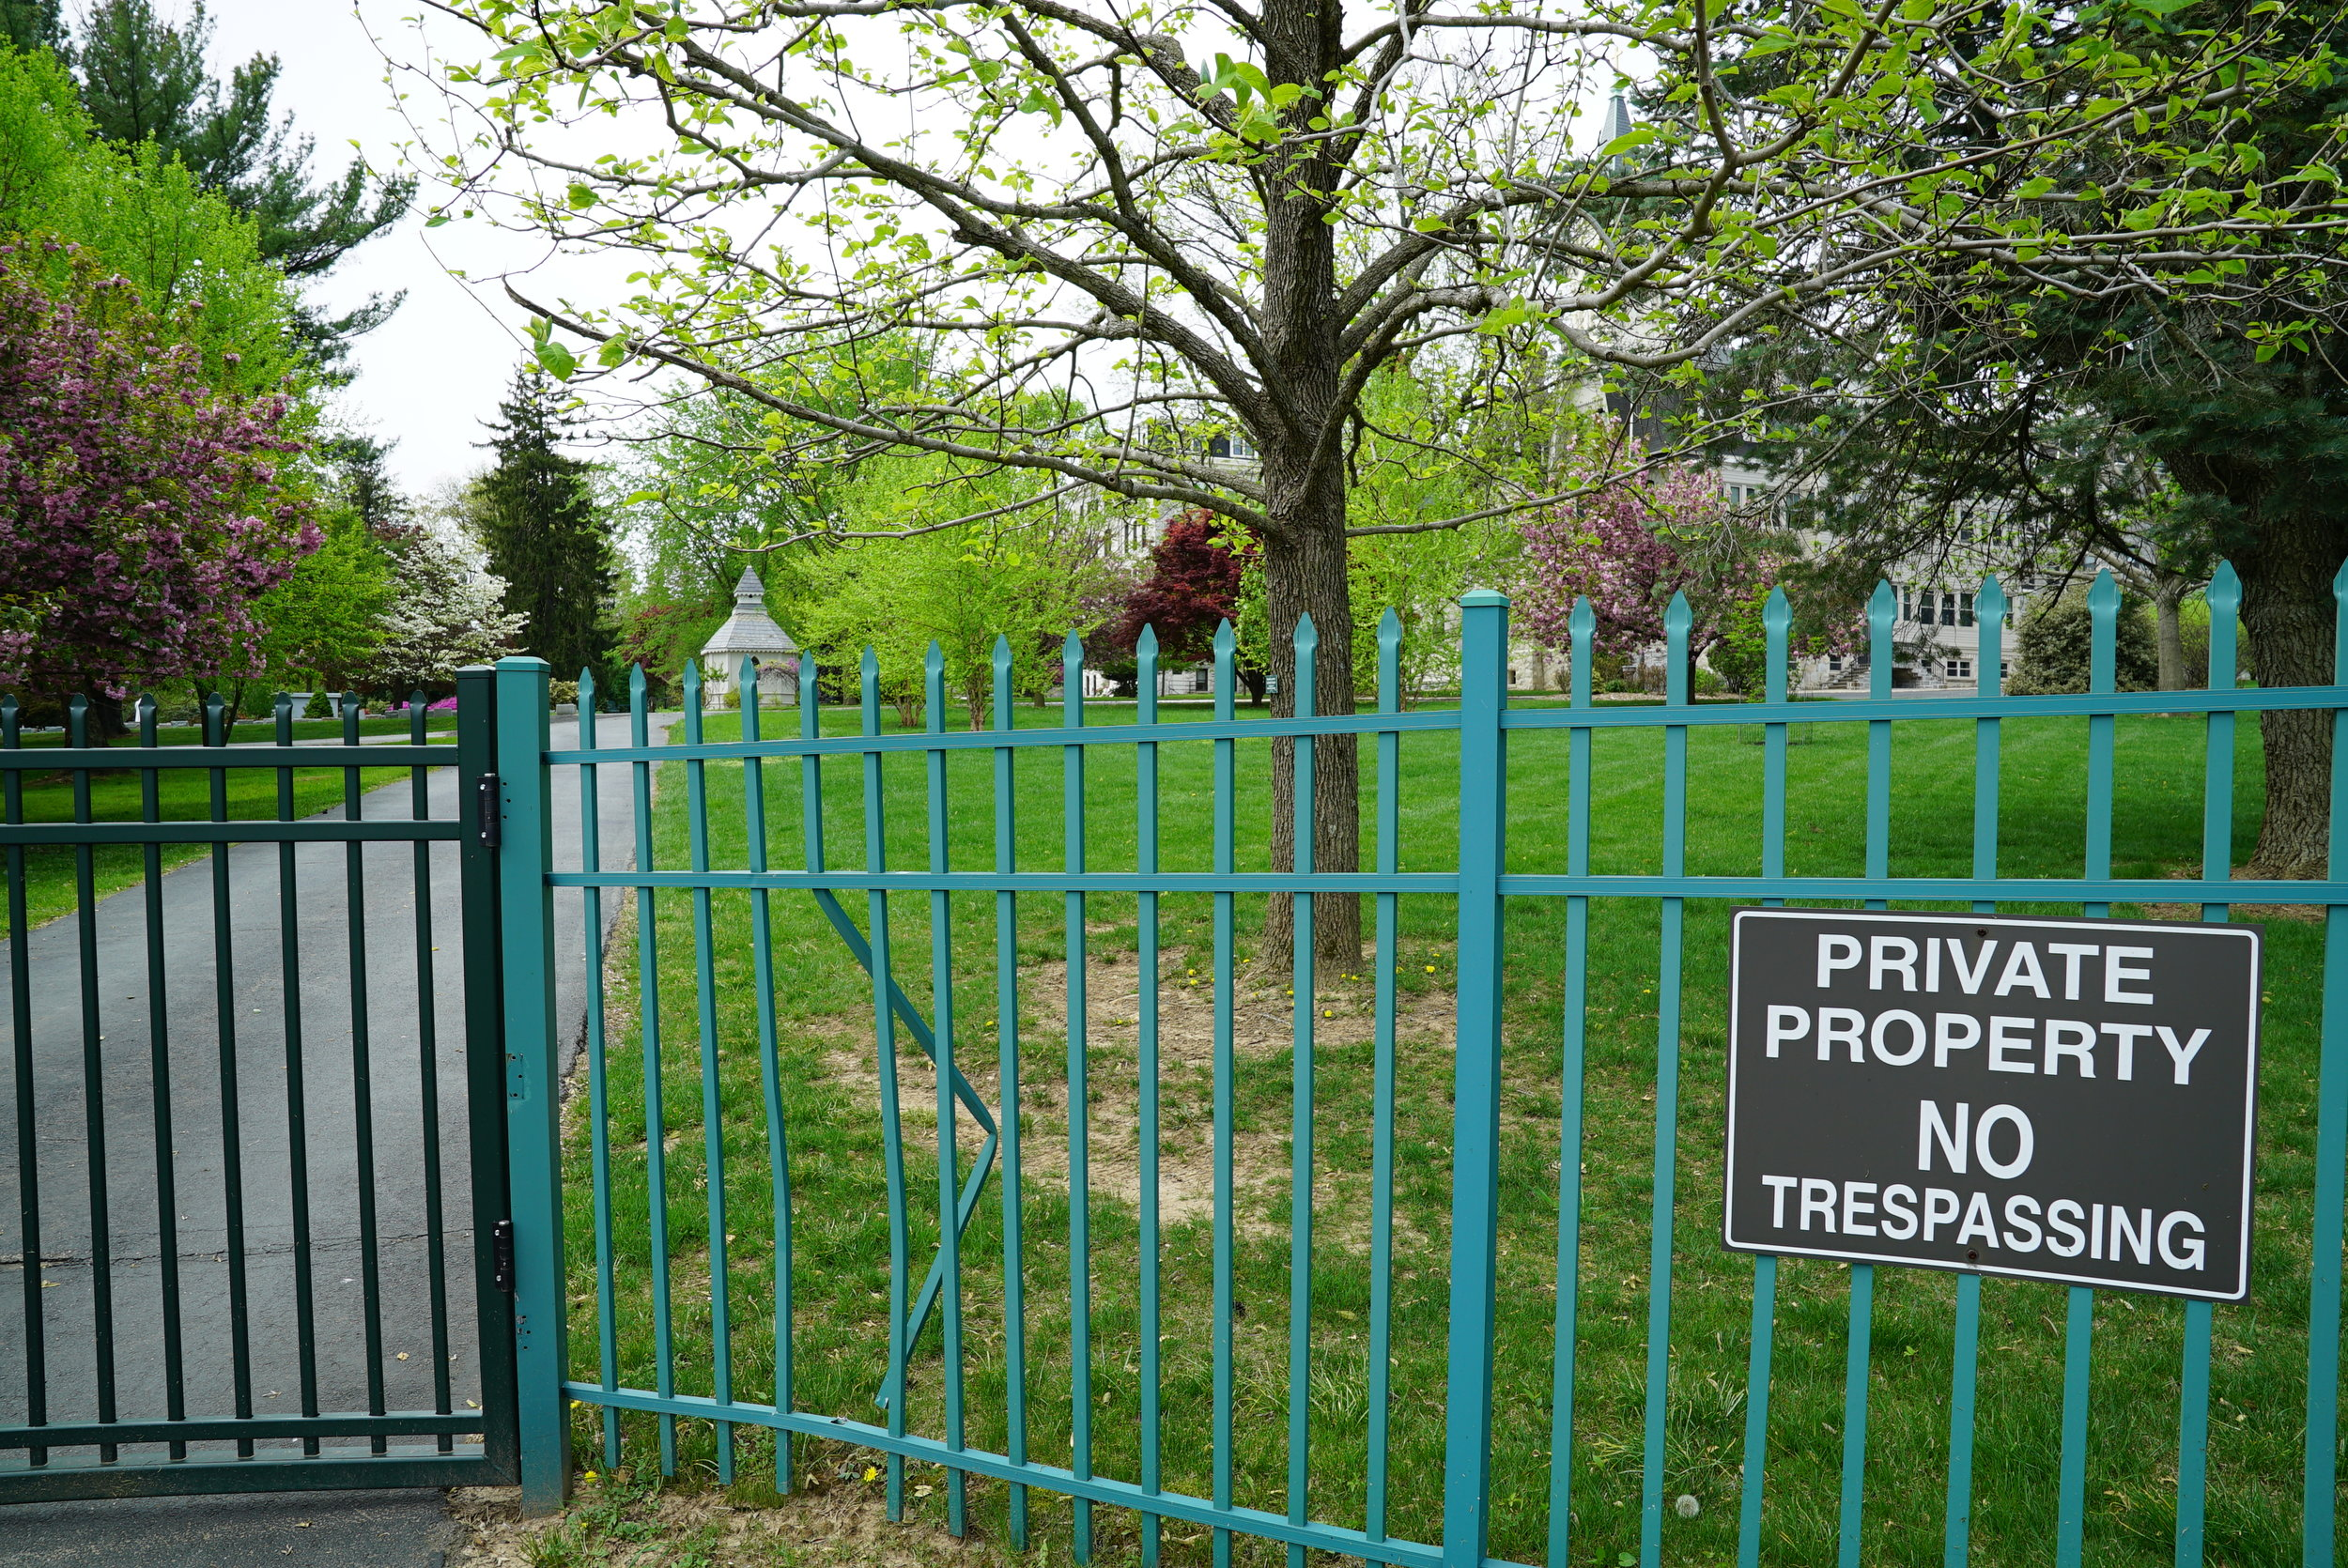 """No Trespassing"" signs are prominently displayed at all entrances to the cemetery. Our Lady of Angels Cemetery. Aston, Pennsylvania."